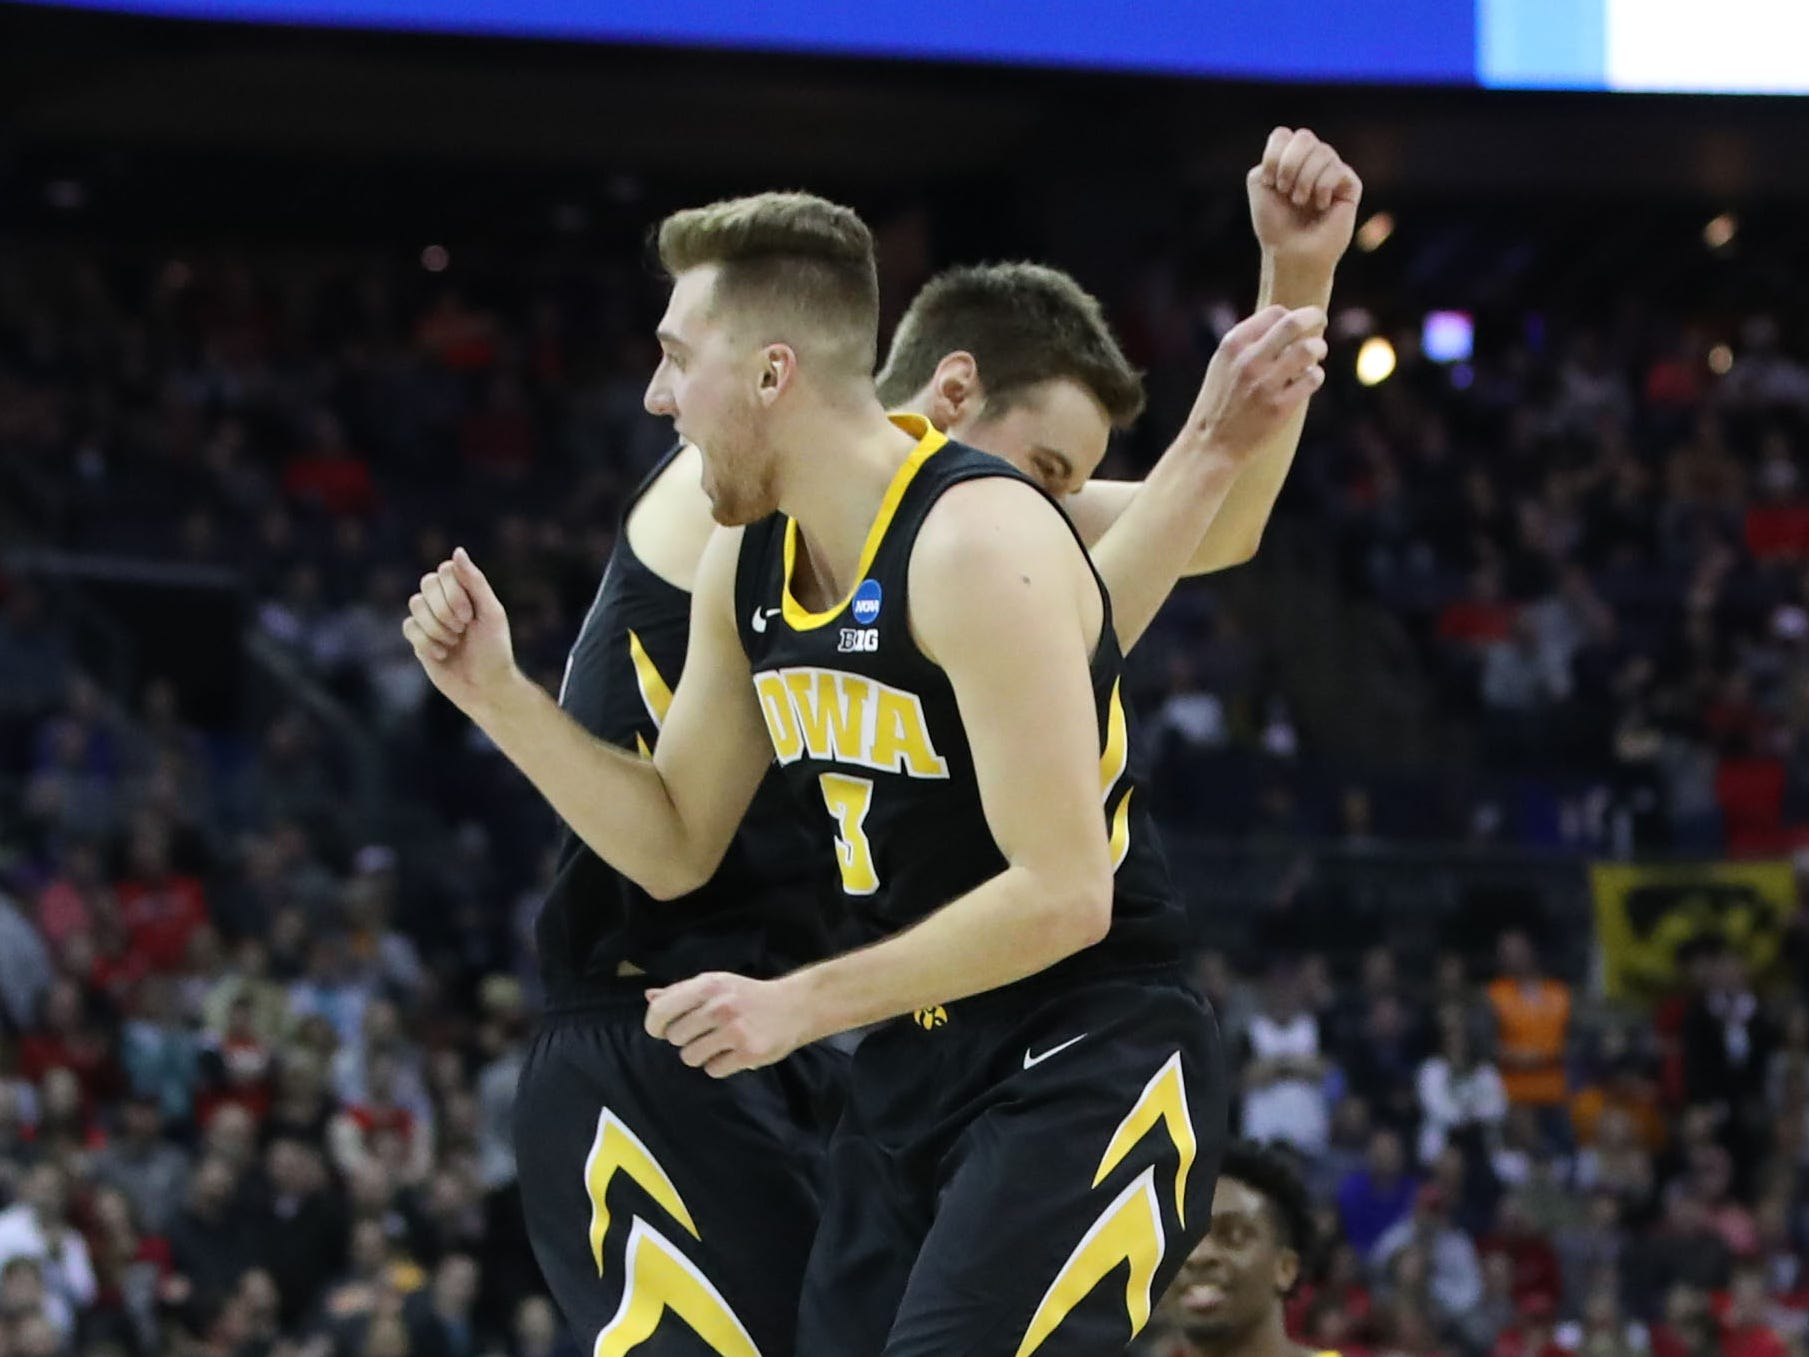 Iowa Hawkeyes guard Jordan Bohannon (3) and forward Nicholas Baer (51) react to defeating Cincinnati Bearcats in the first round of the 2019 NCAA Tournament at Nationwide Arena on March 22, 2019.